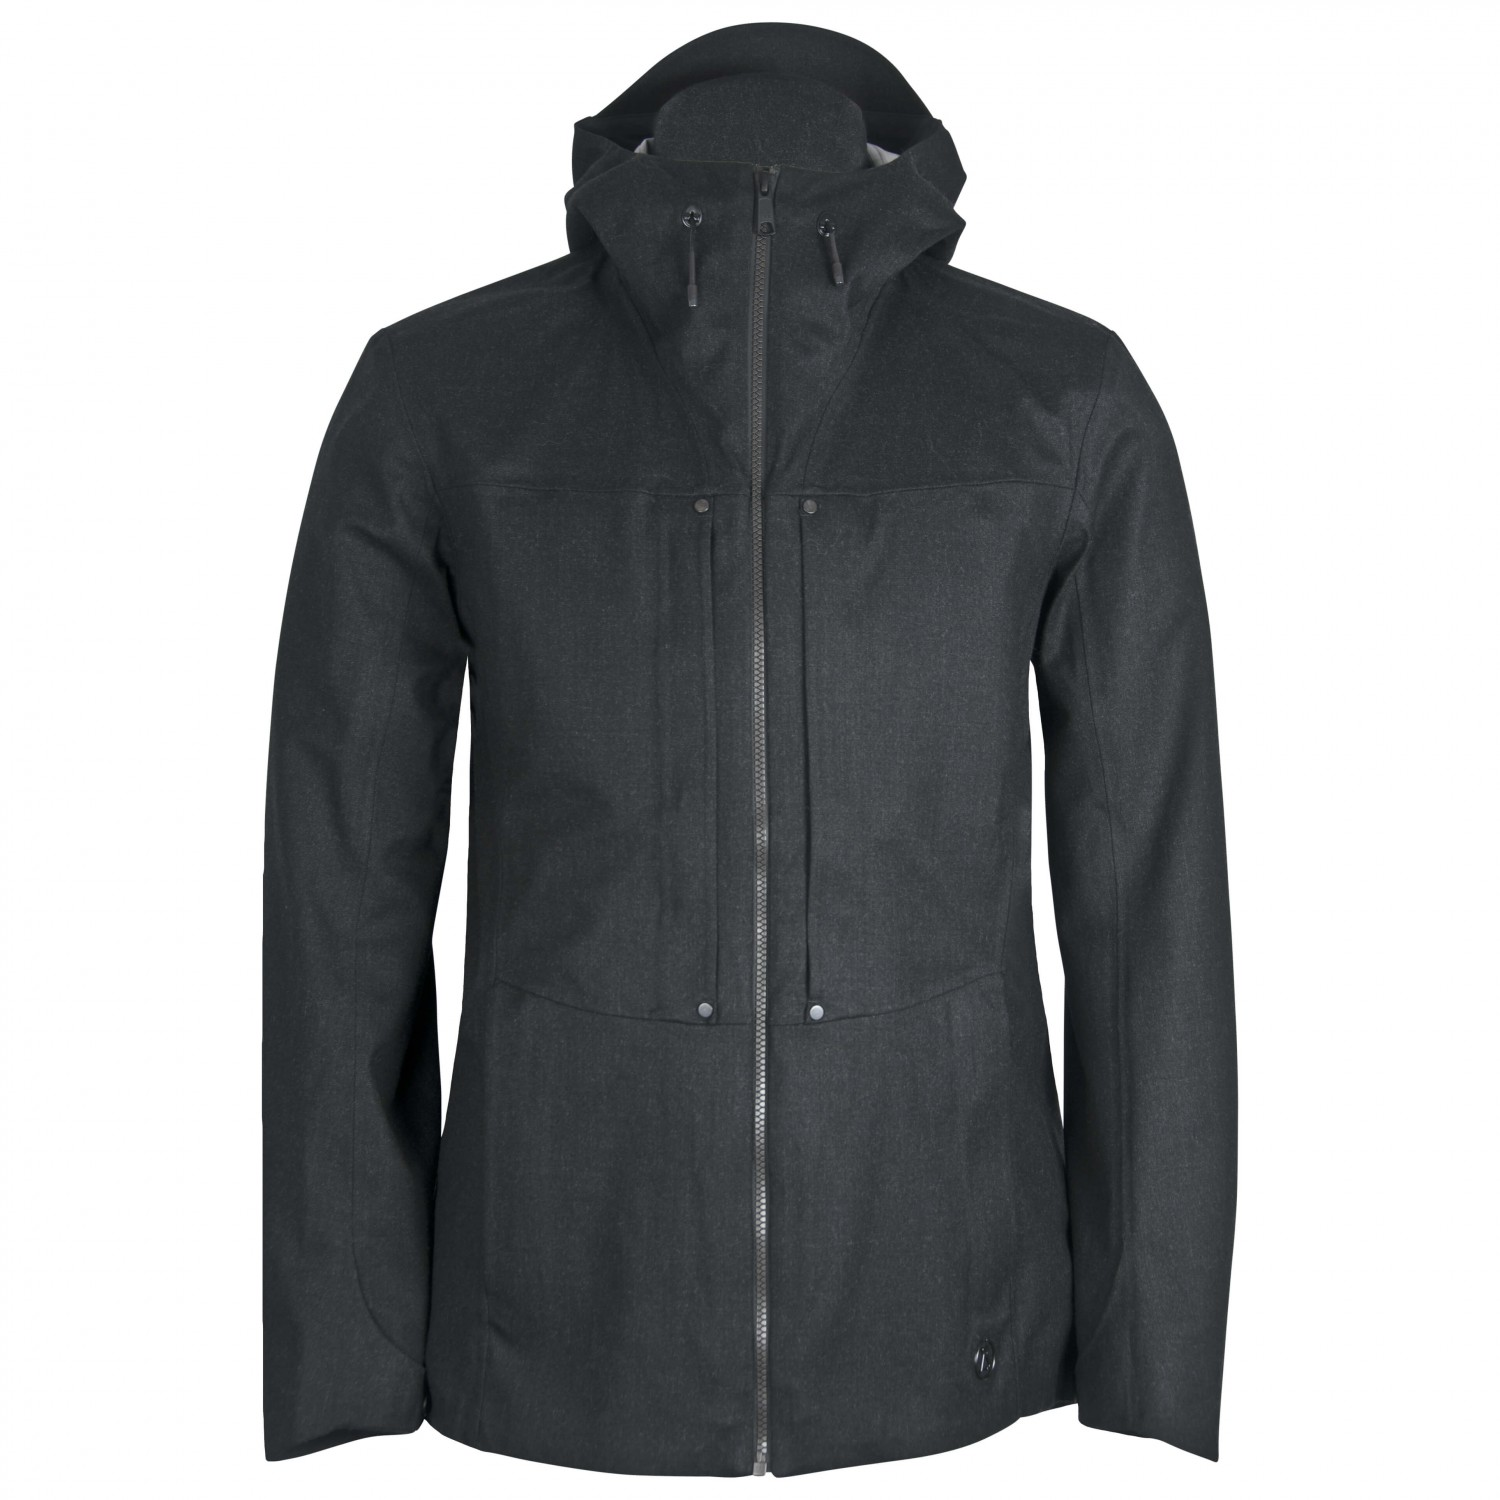 4c93637f2 Alchemy Equipment - Wool C_Change Rainshell - Waterproof jacket